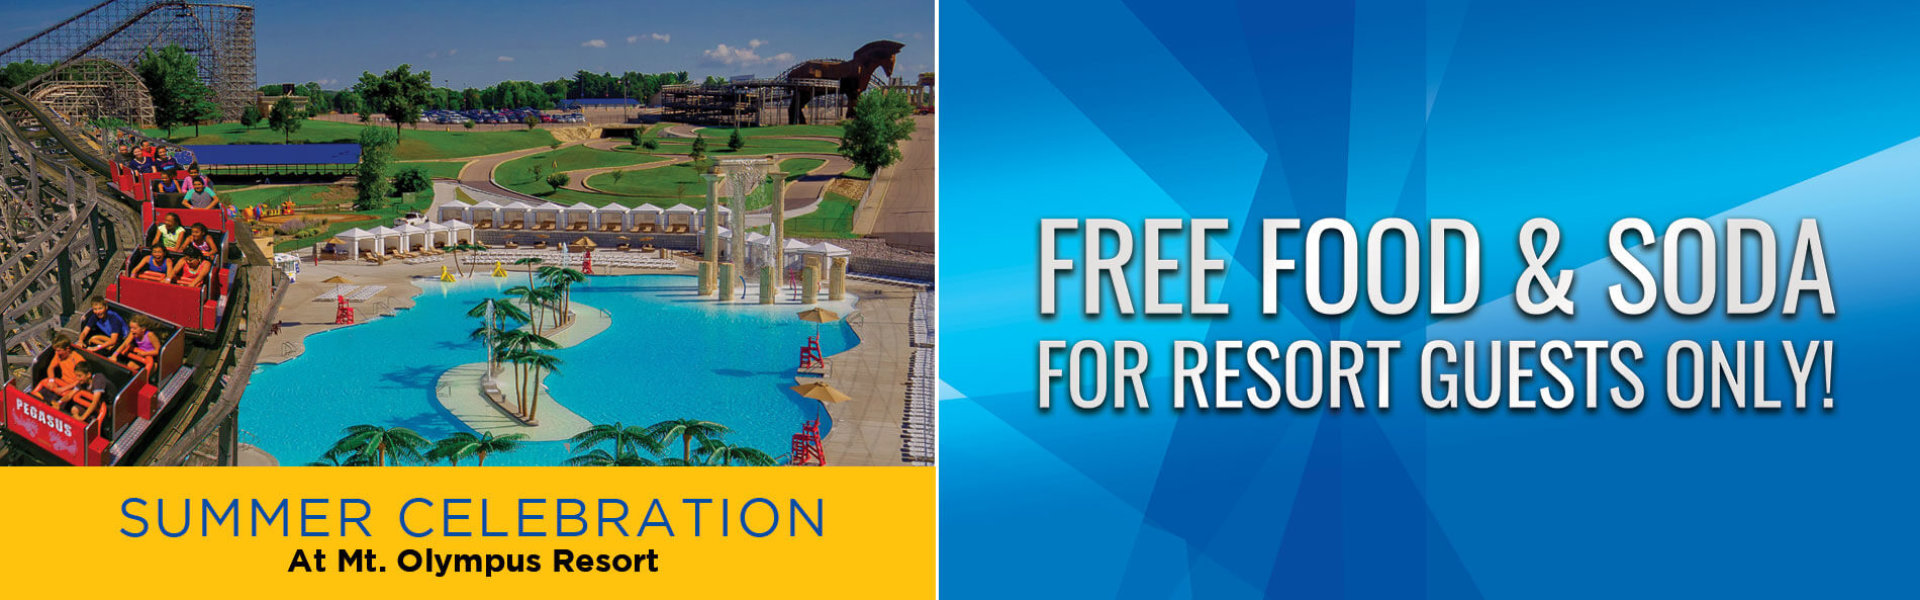 Summer Celebration at Mt Olympus Resort. Free Food and Soda for Resort Guests Only.